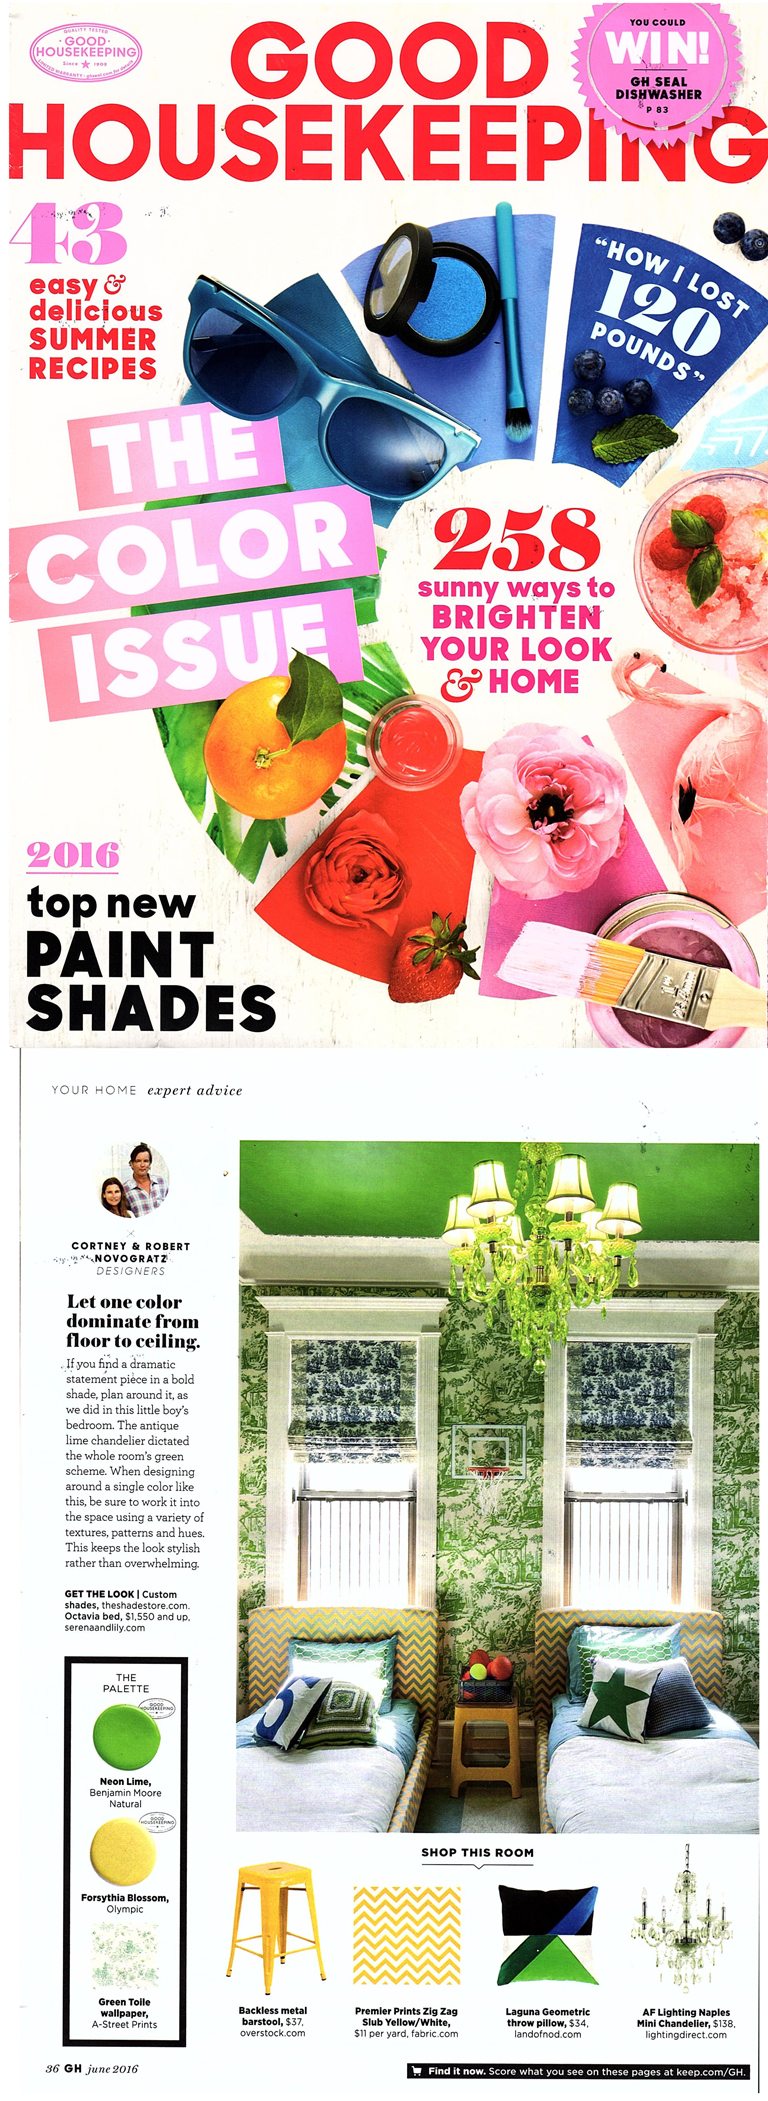 Good Housekeeping | The Color Issue